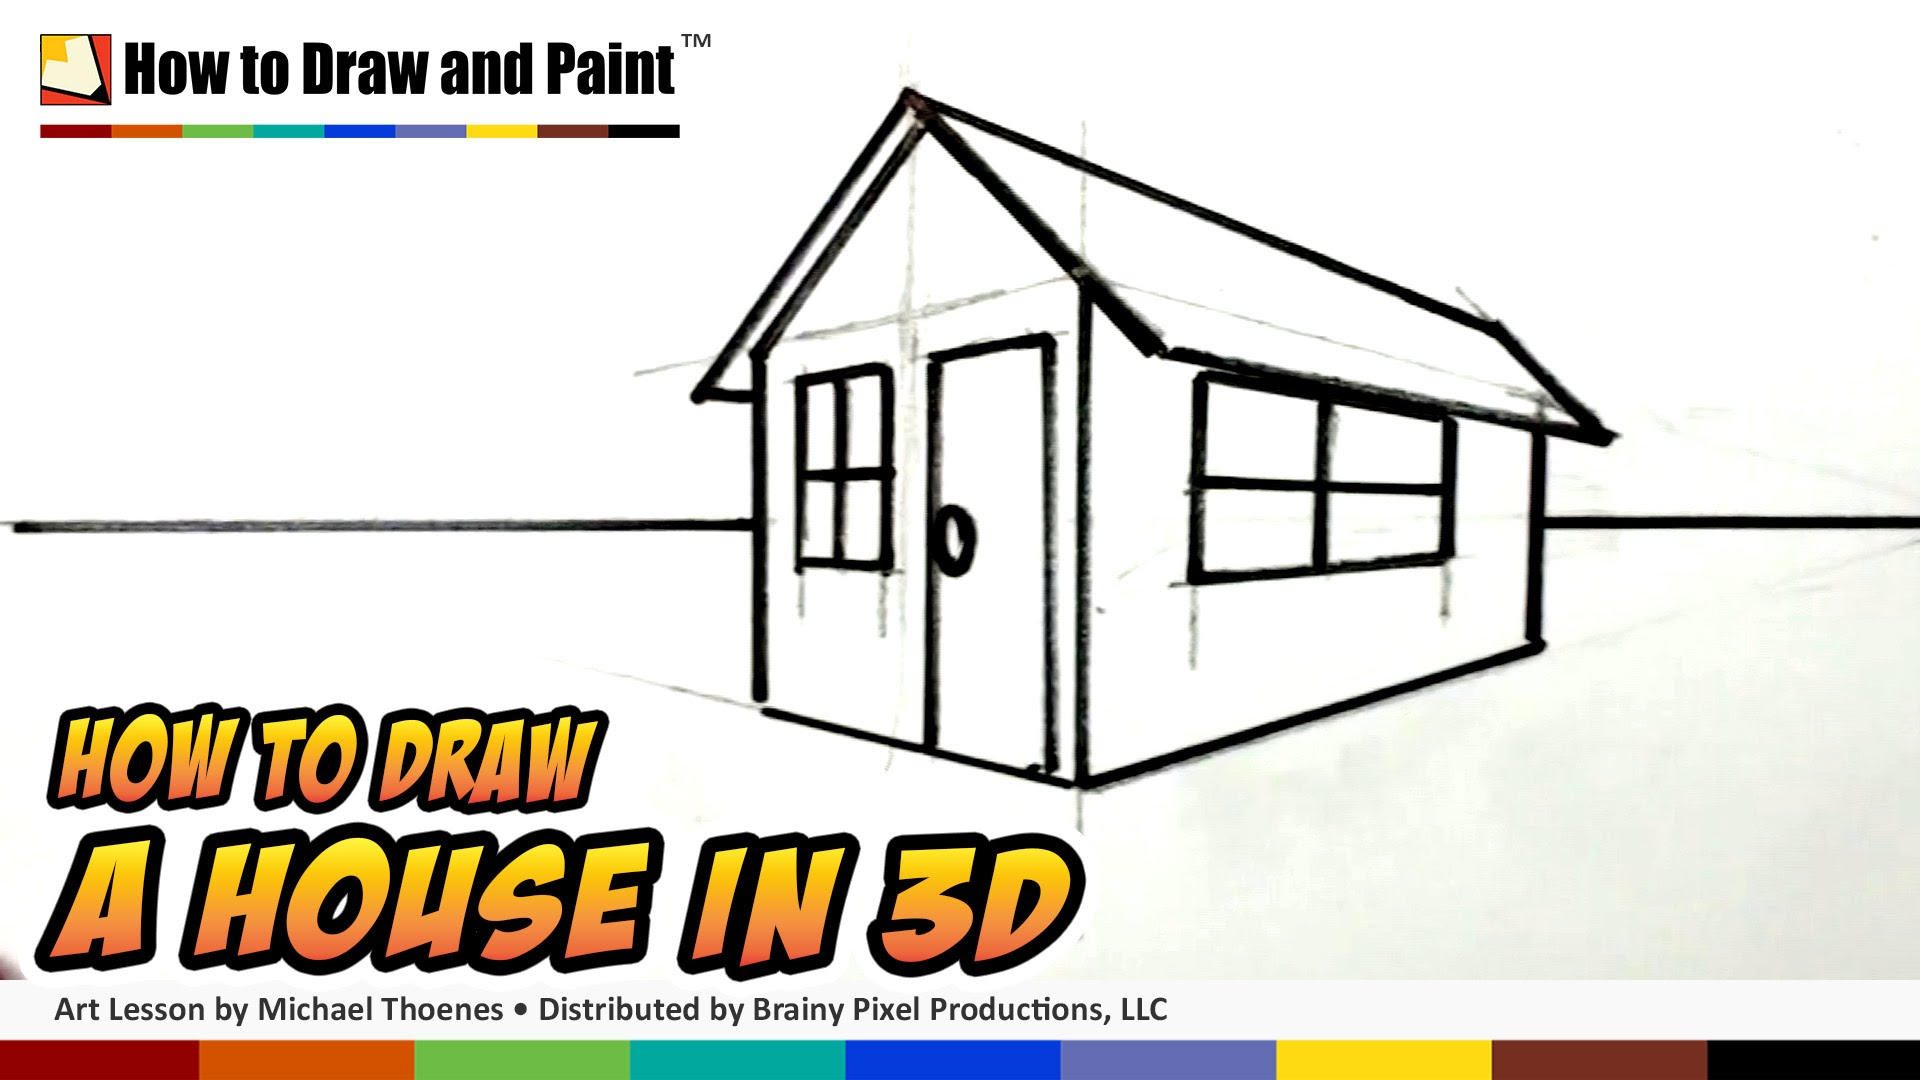 1920x1080 How To Draw A House In 3d For Kids